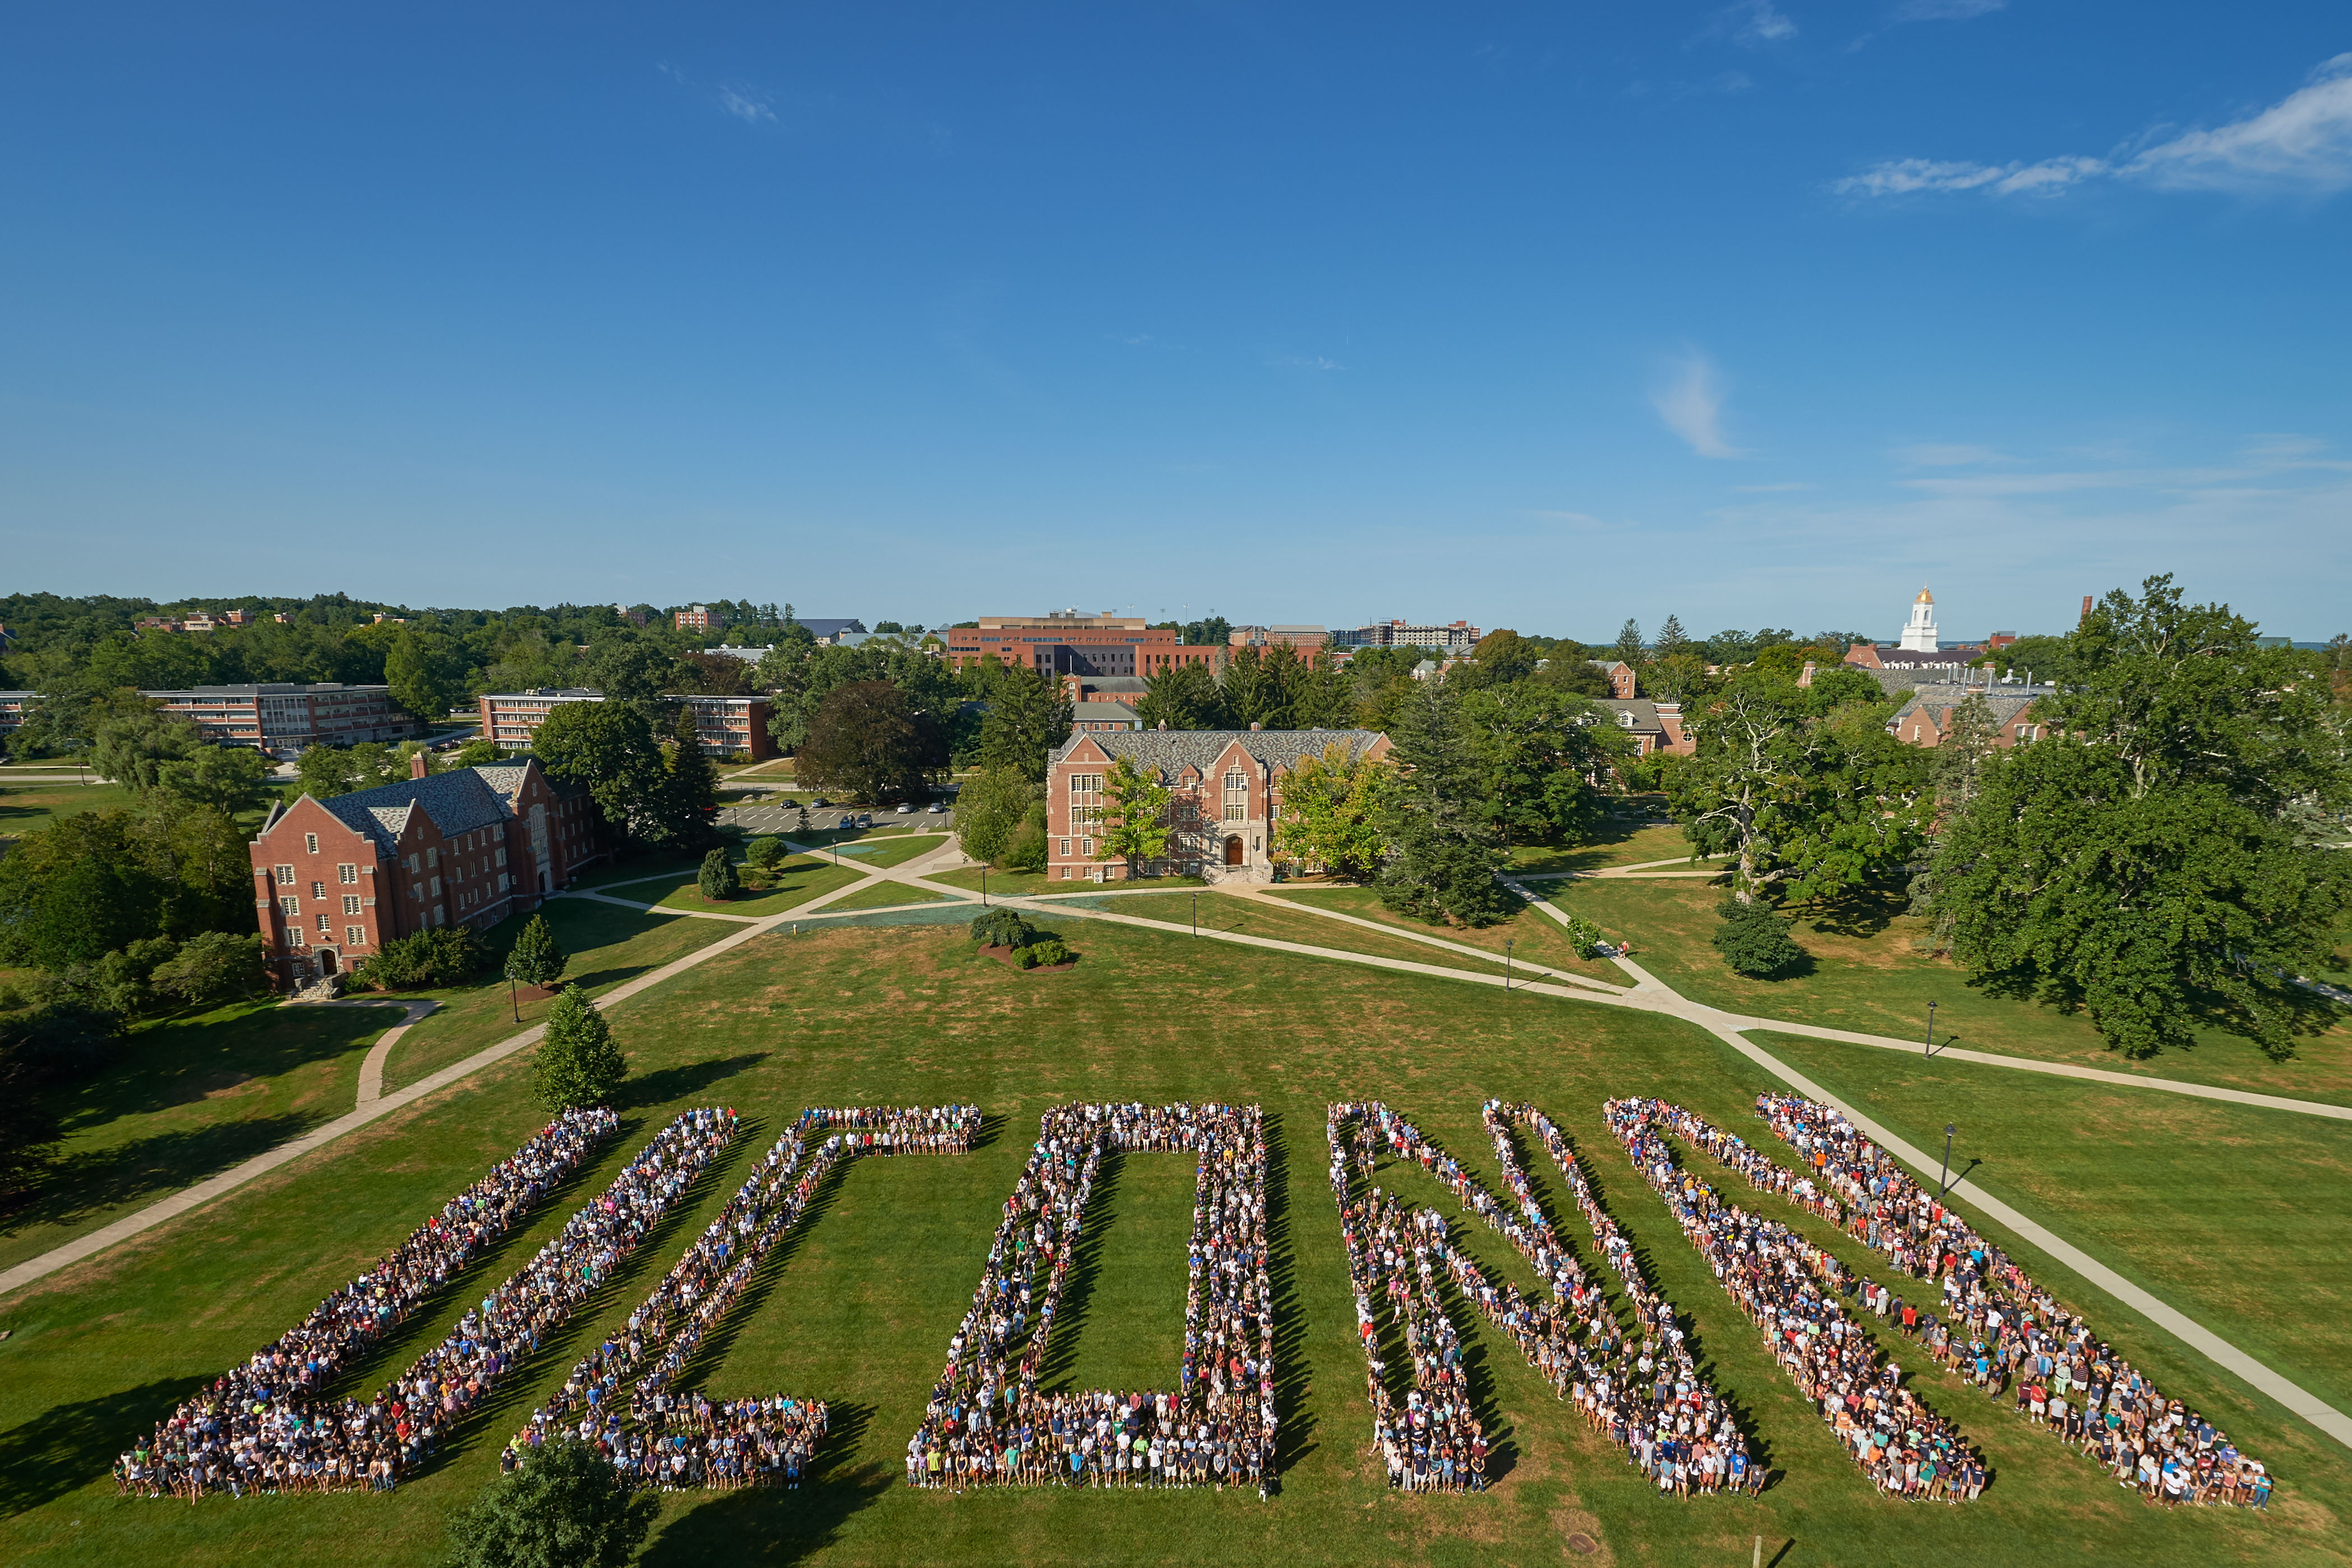 More than 3000 members of the UConn class of 2019 pose for a photo on the Great Lawn on Aug. 29, 2015. (Peter Morenus/UConn Photo)